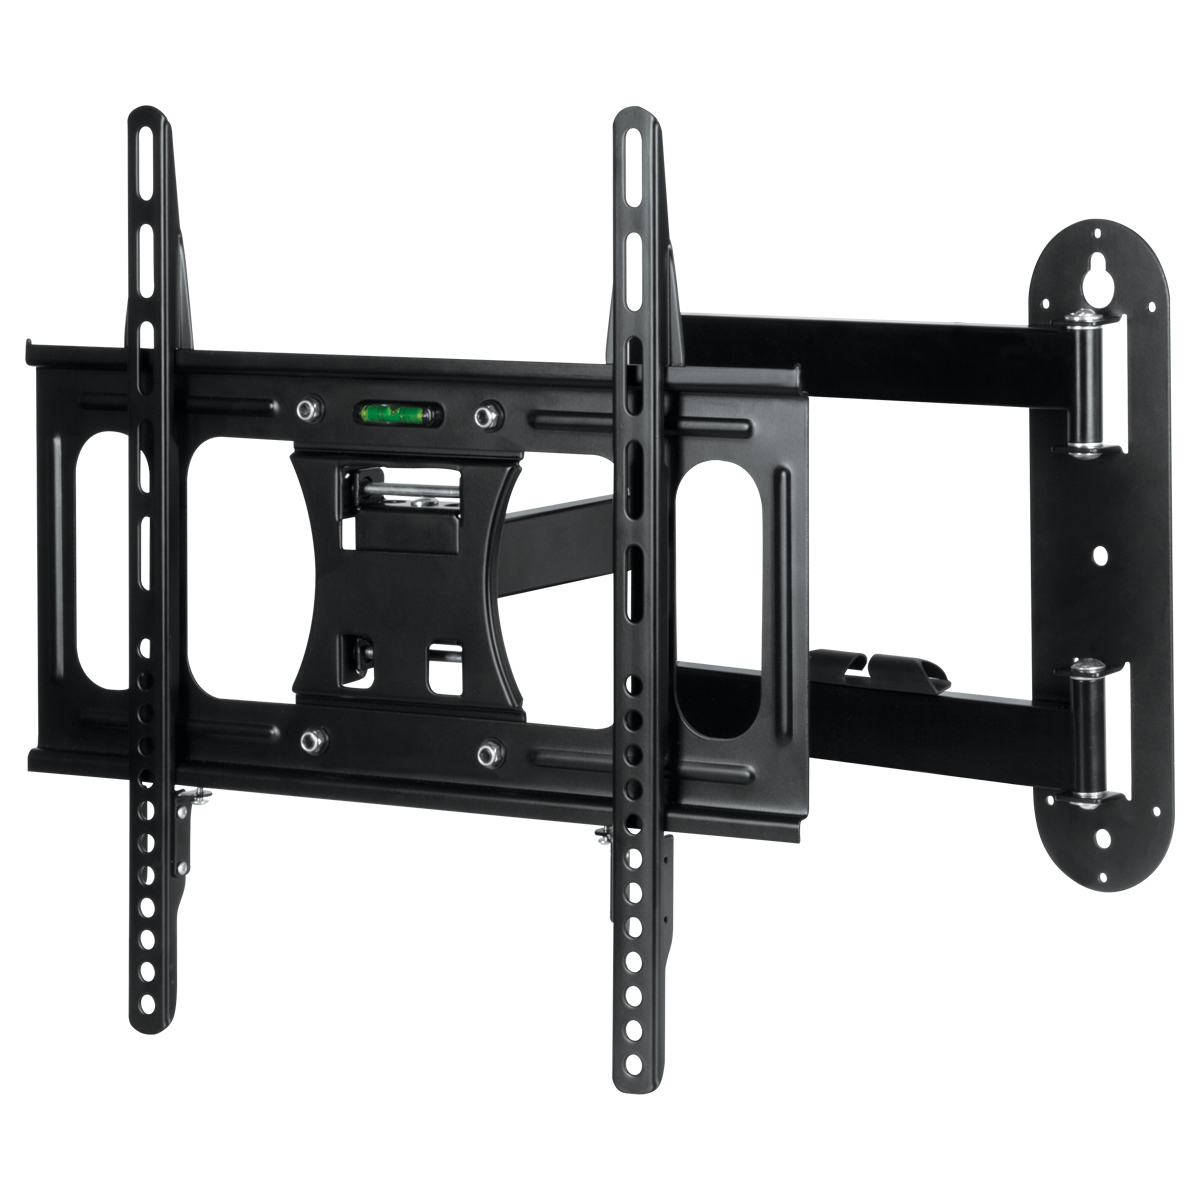 Full-Motion TV Wall Mount ARCTIC TV Flex M Extendable